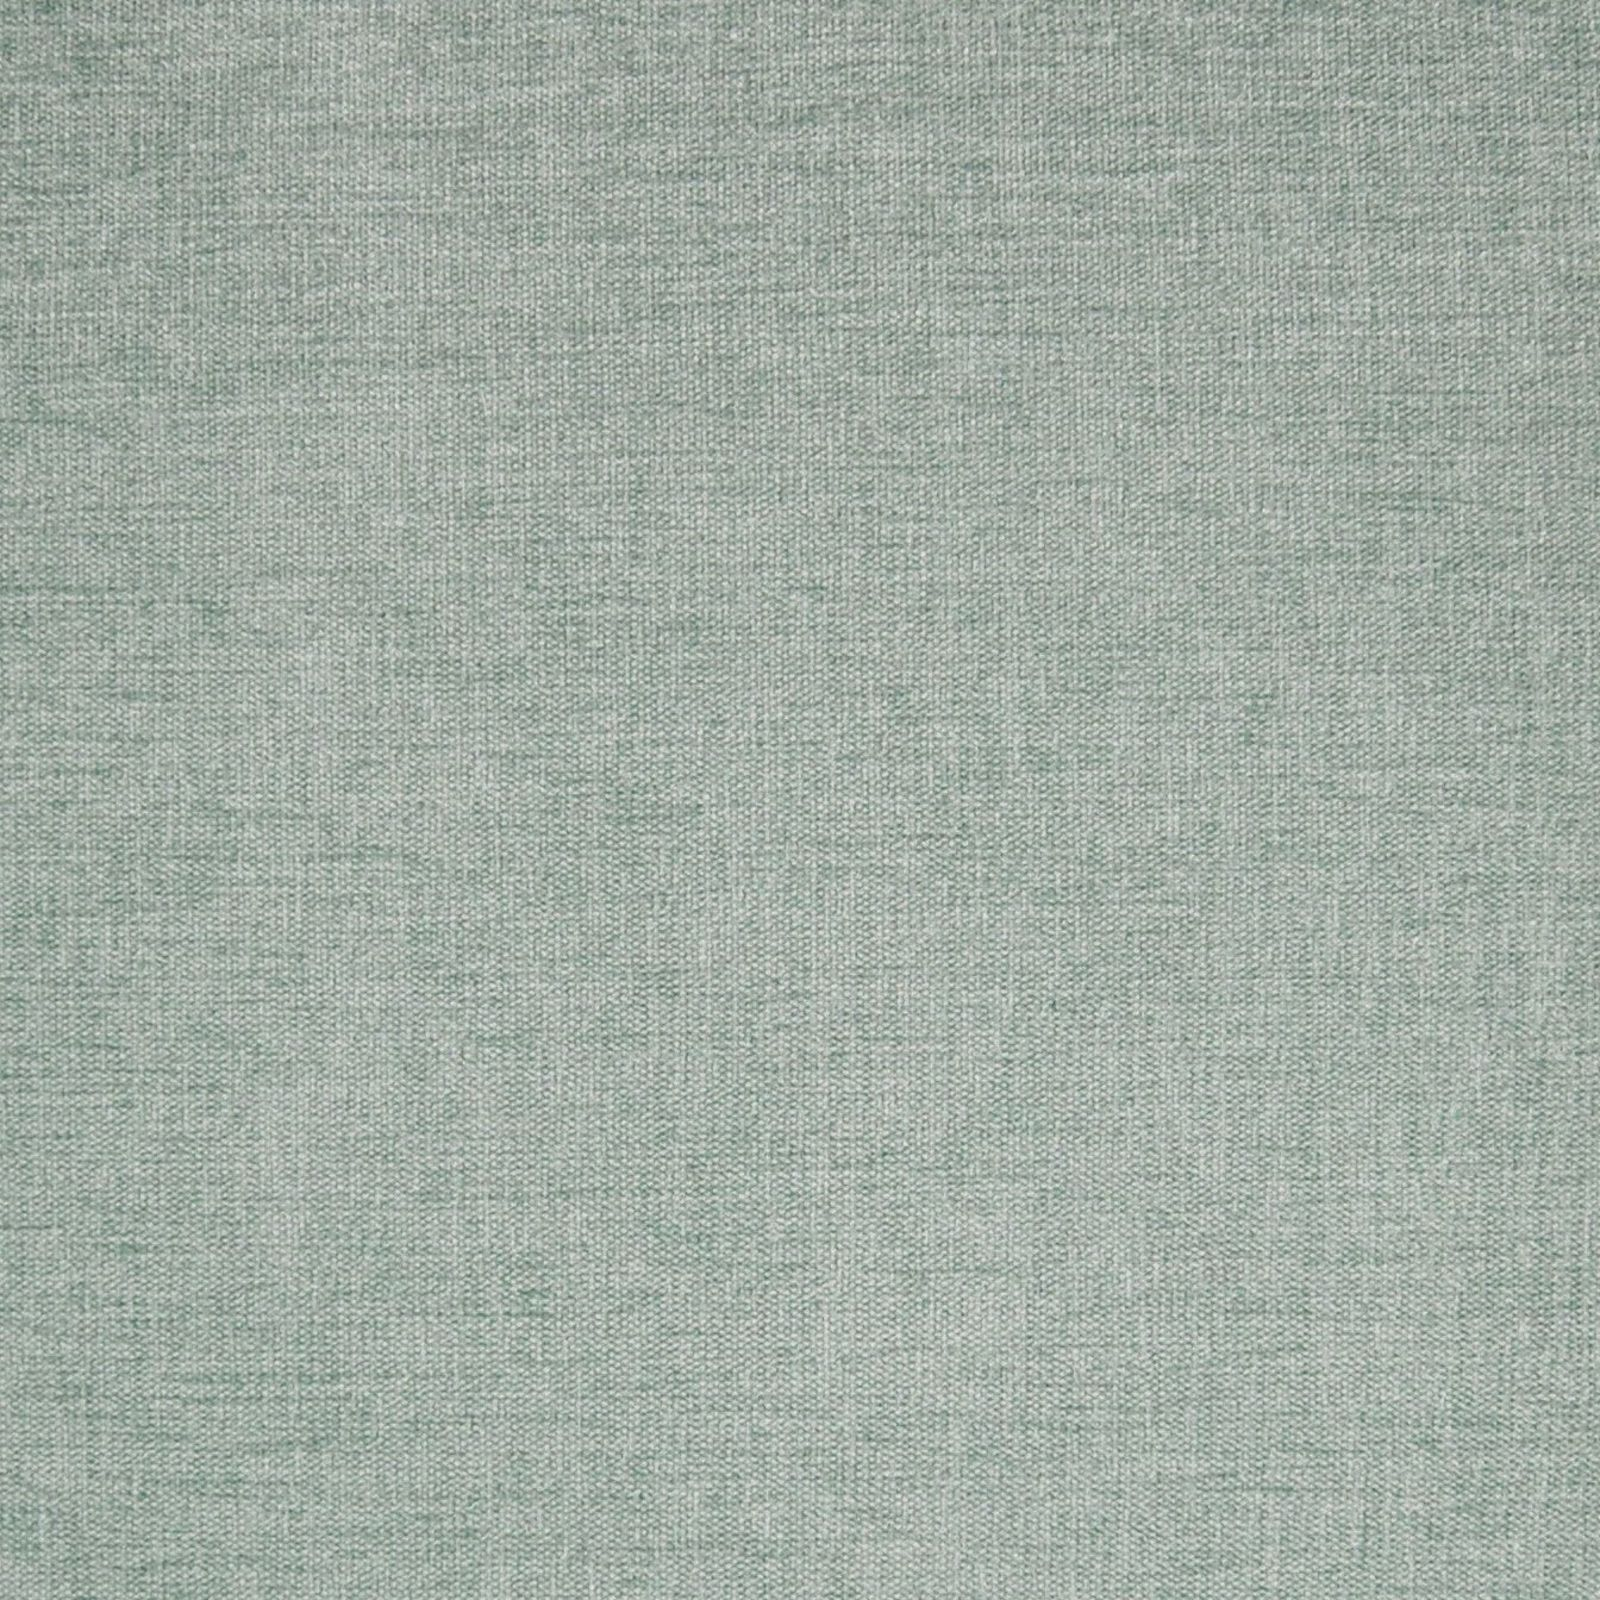 Glacier Blue And Teal Solid Chenille Upholstery Fabric